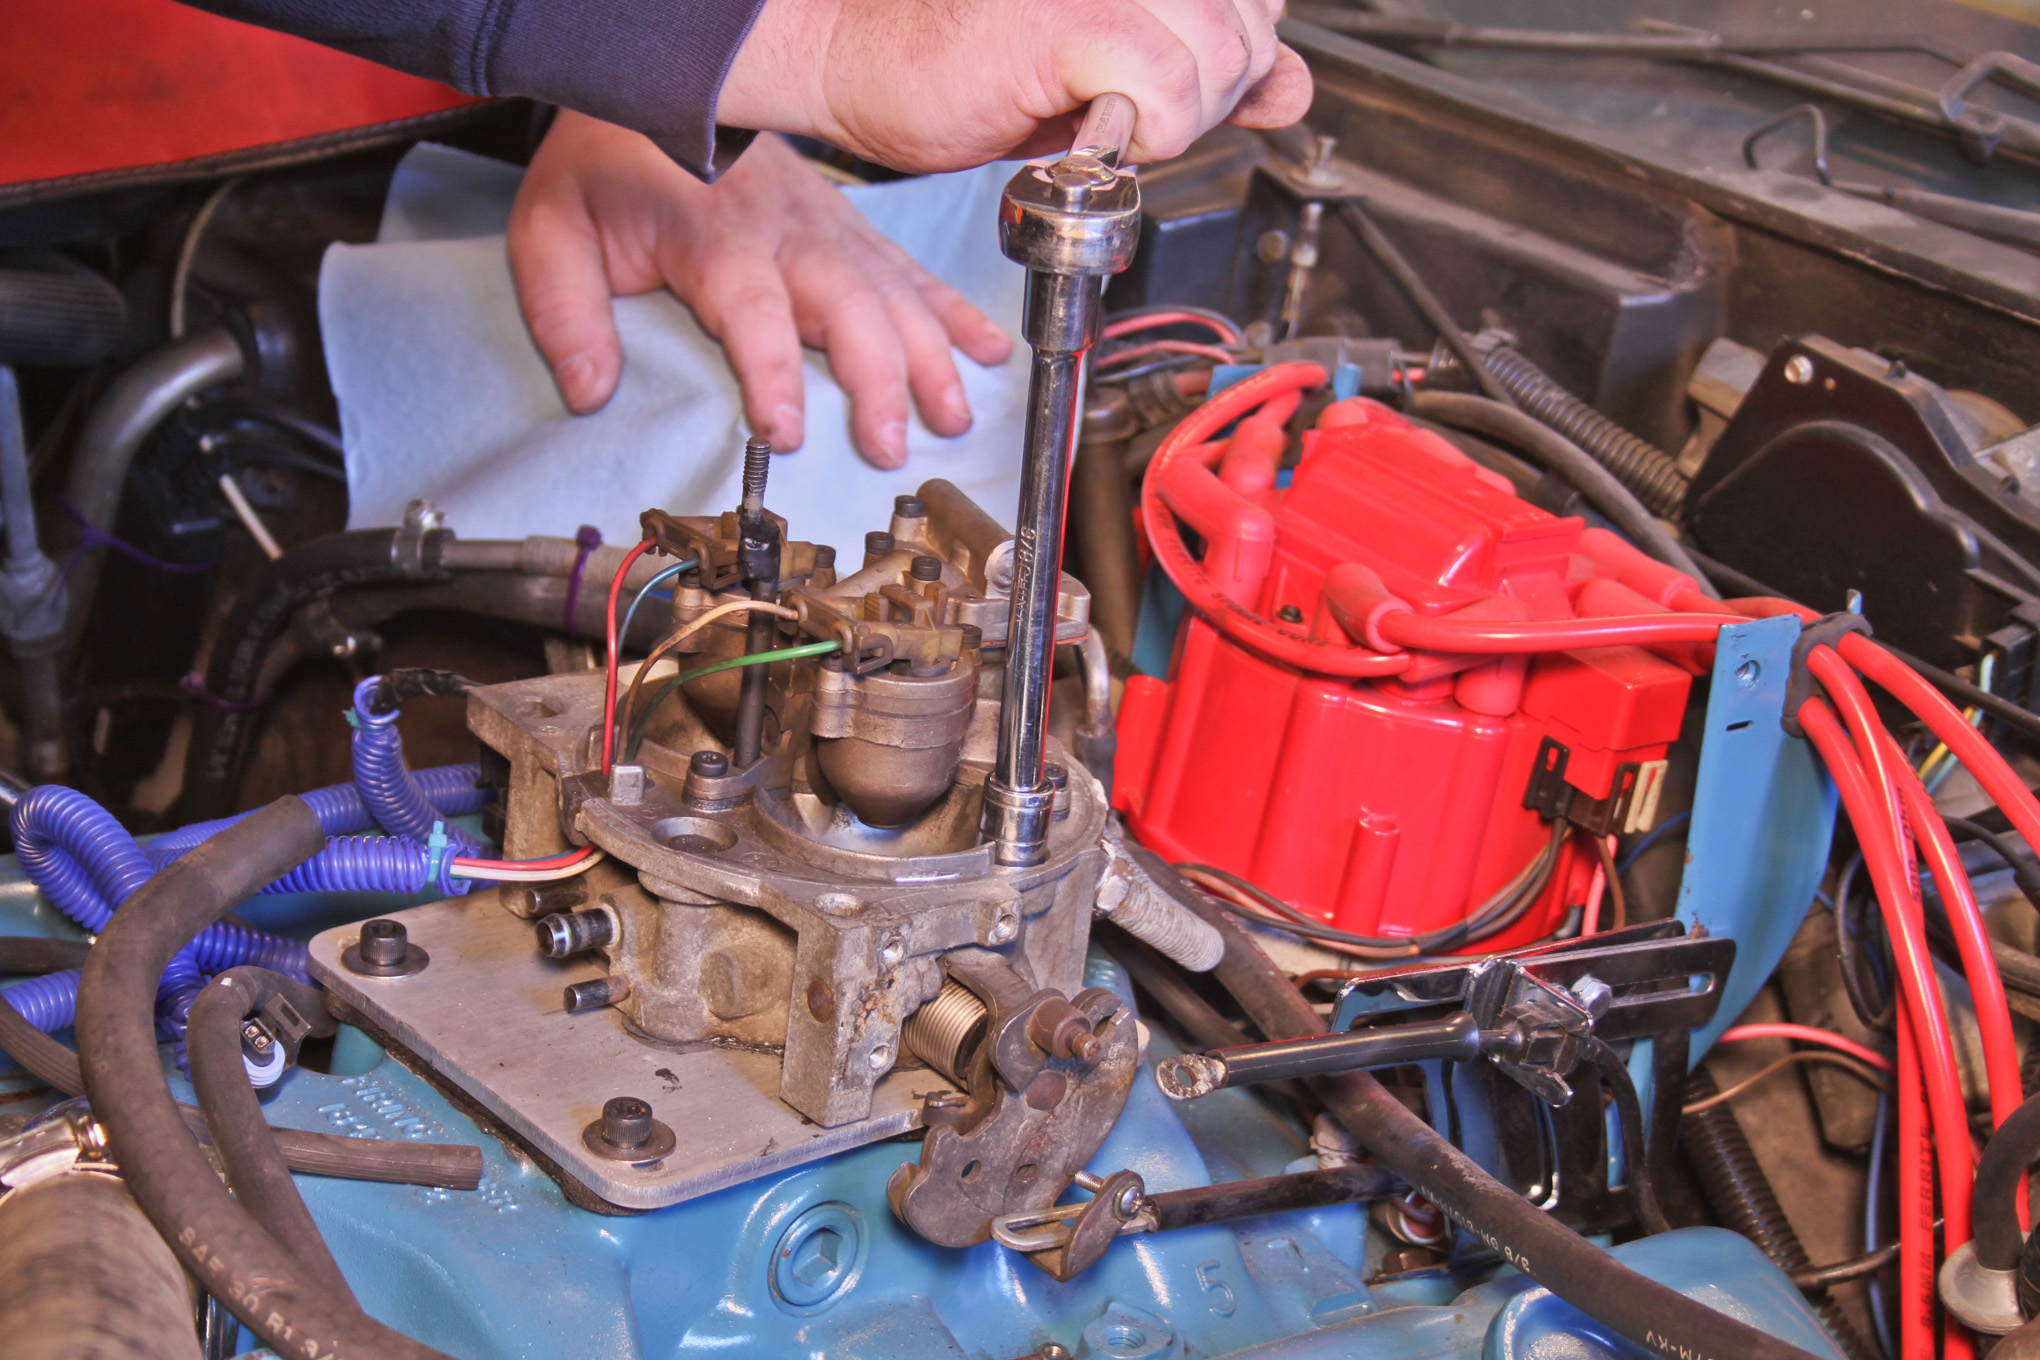 A Homemade Tbi Conversion For 904 Hot Rod Network Wiring Harness The Unit Used Project Is Simply Salvage Yard Part Scavenged From Any Of Millions Gm Trucks Built Mid 1980s Through